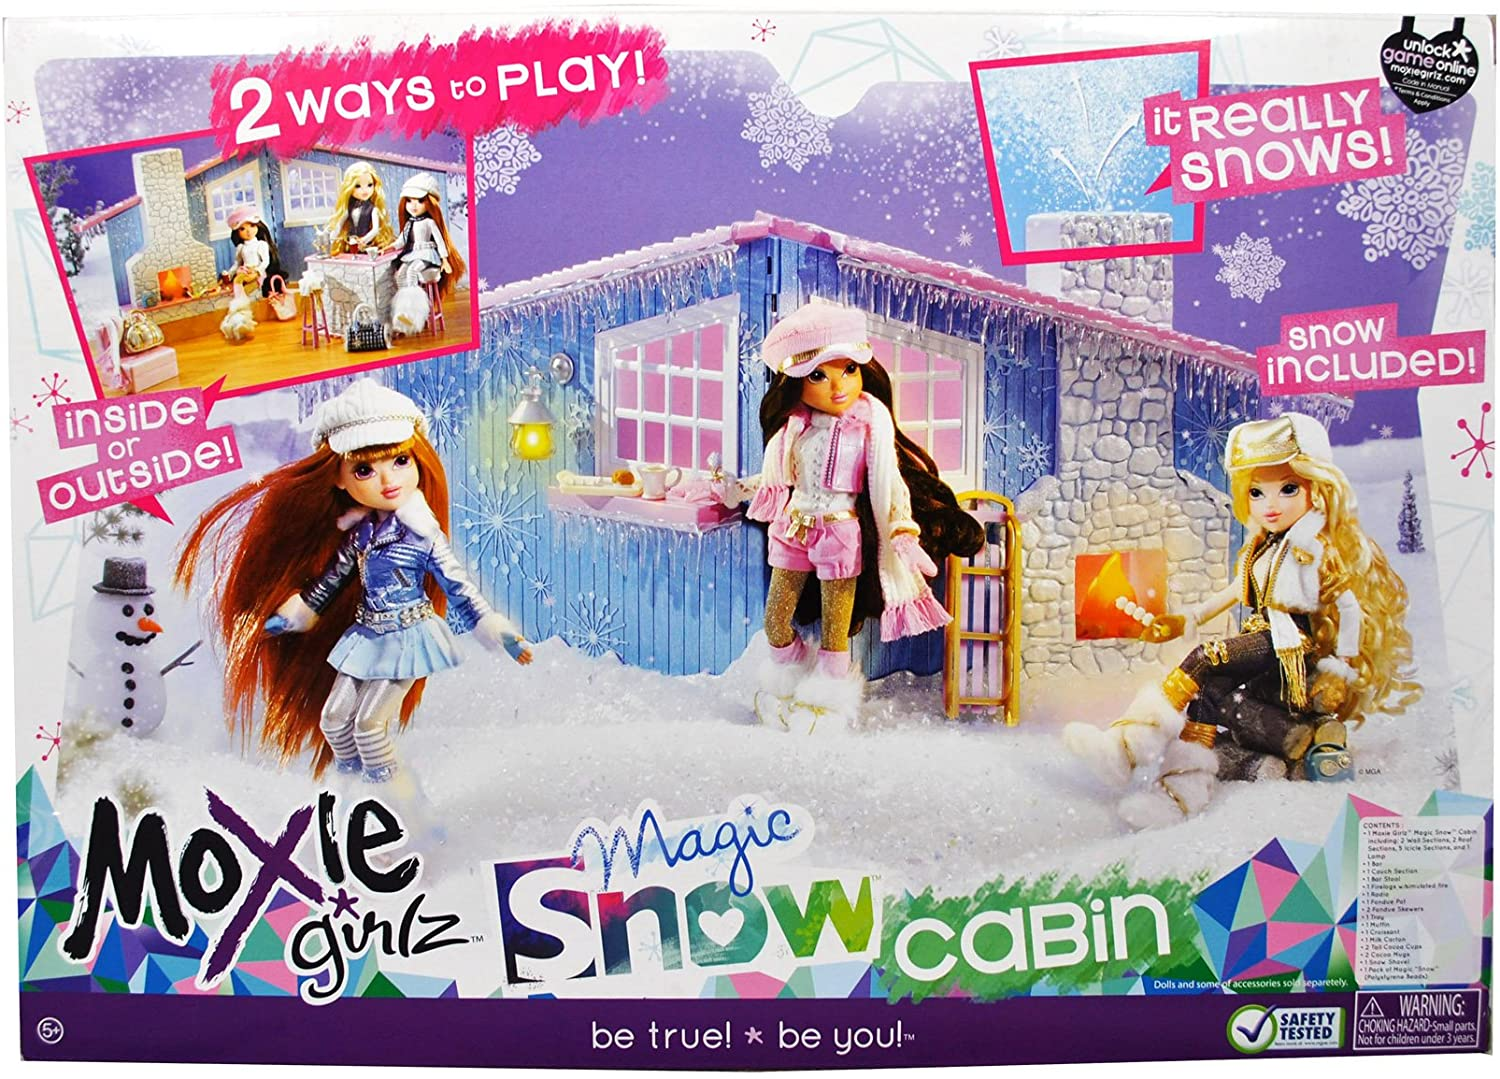 Moxie Girlz Doll Series Accessory Set - Magic Snow Cabin with Bat Table, Bar Stool, Couch, Firelogs with Simulated Fire, Radio, Fondue Pot, 2 Fondue Skewers, Tray, Muffin, Croissant, Milk Carton, 2 Tall Cocoa Cups, 2 Cocoa Mugs, Snow Shovel amd 1 Pack of Magic